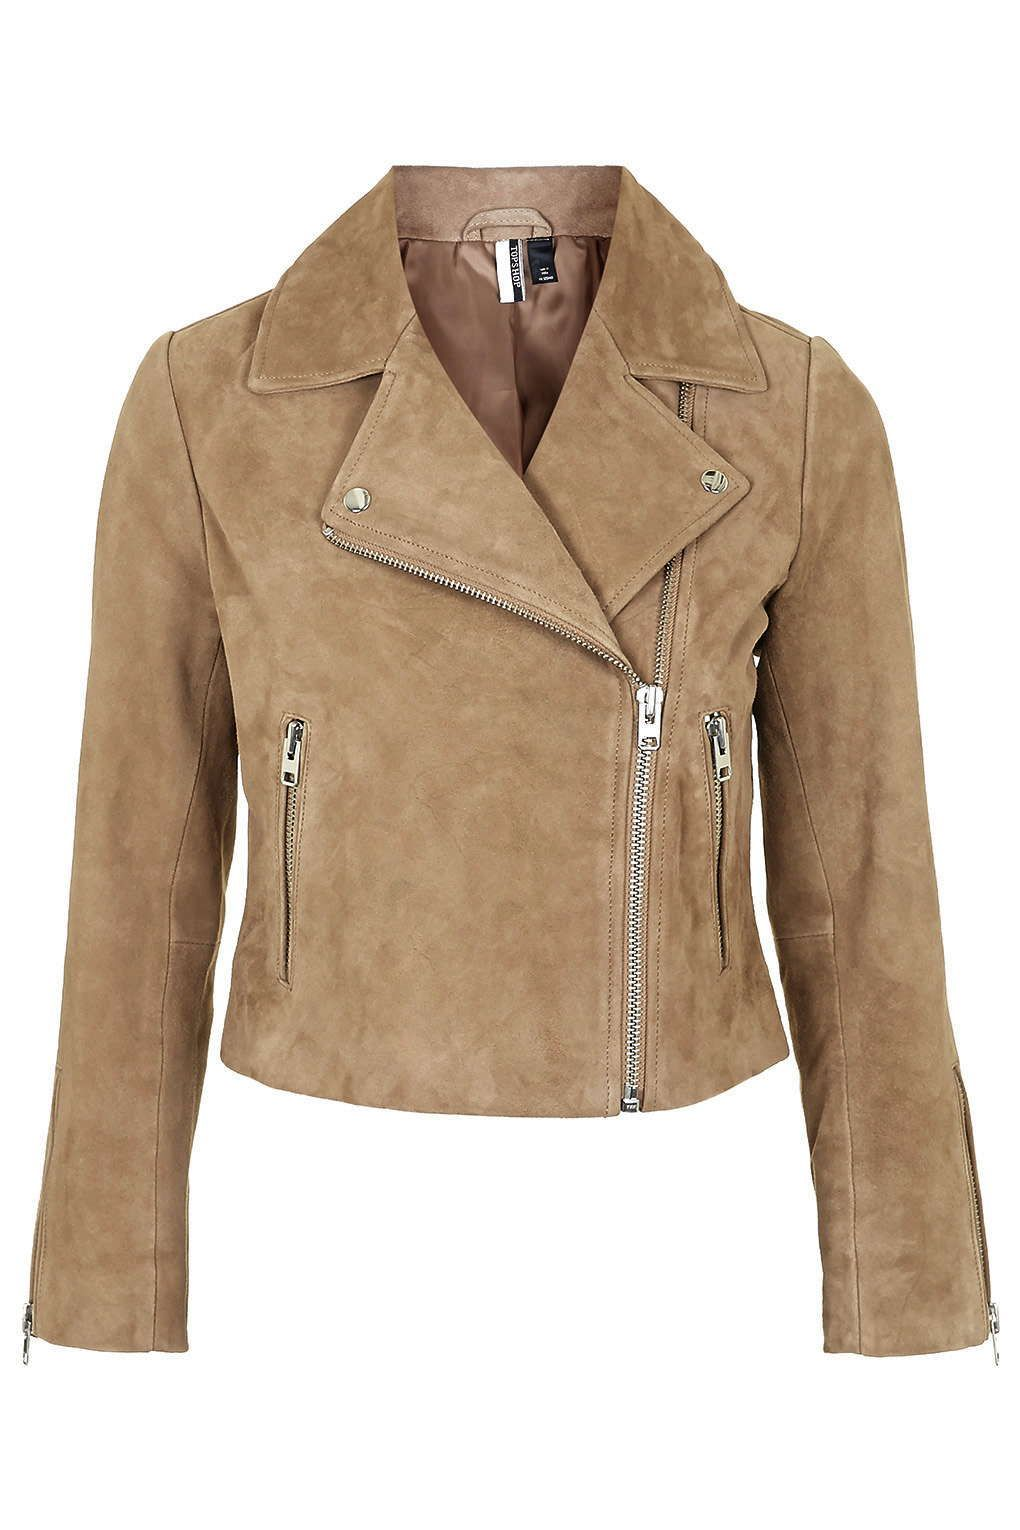 27dc74d44 Suede Biker Jacket - Topshop | If Only Fashion. | Tan leather ...